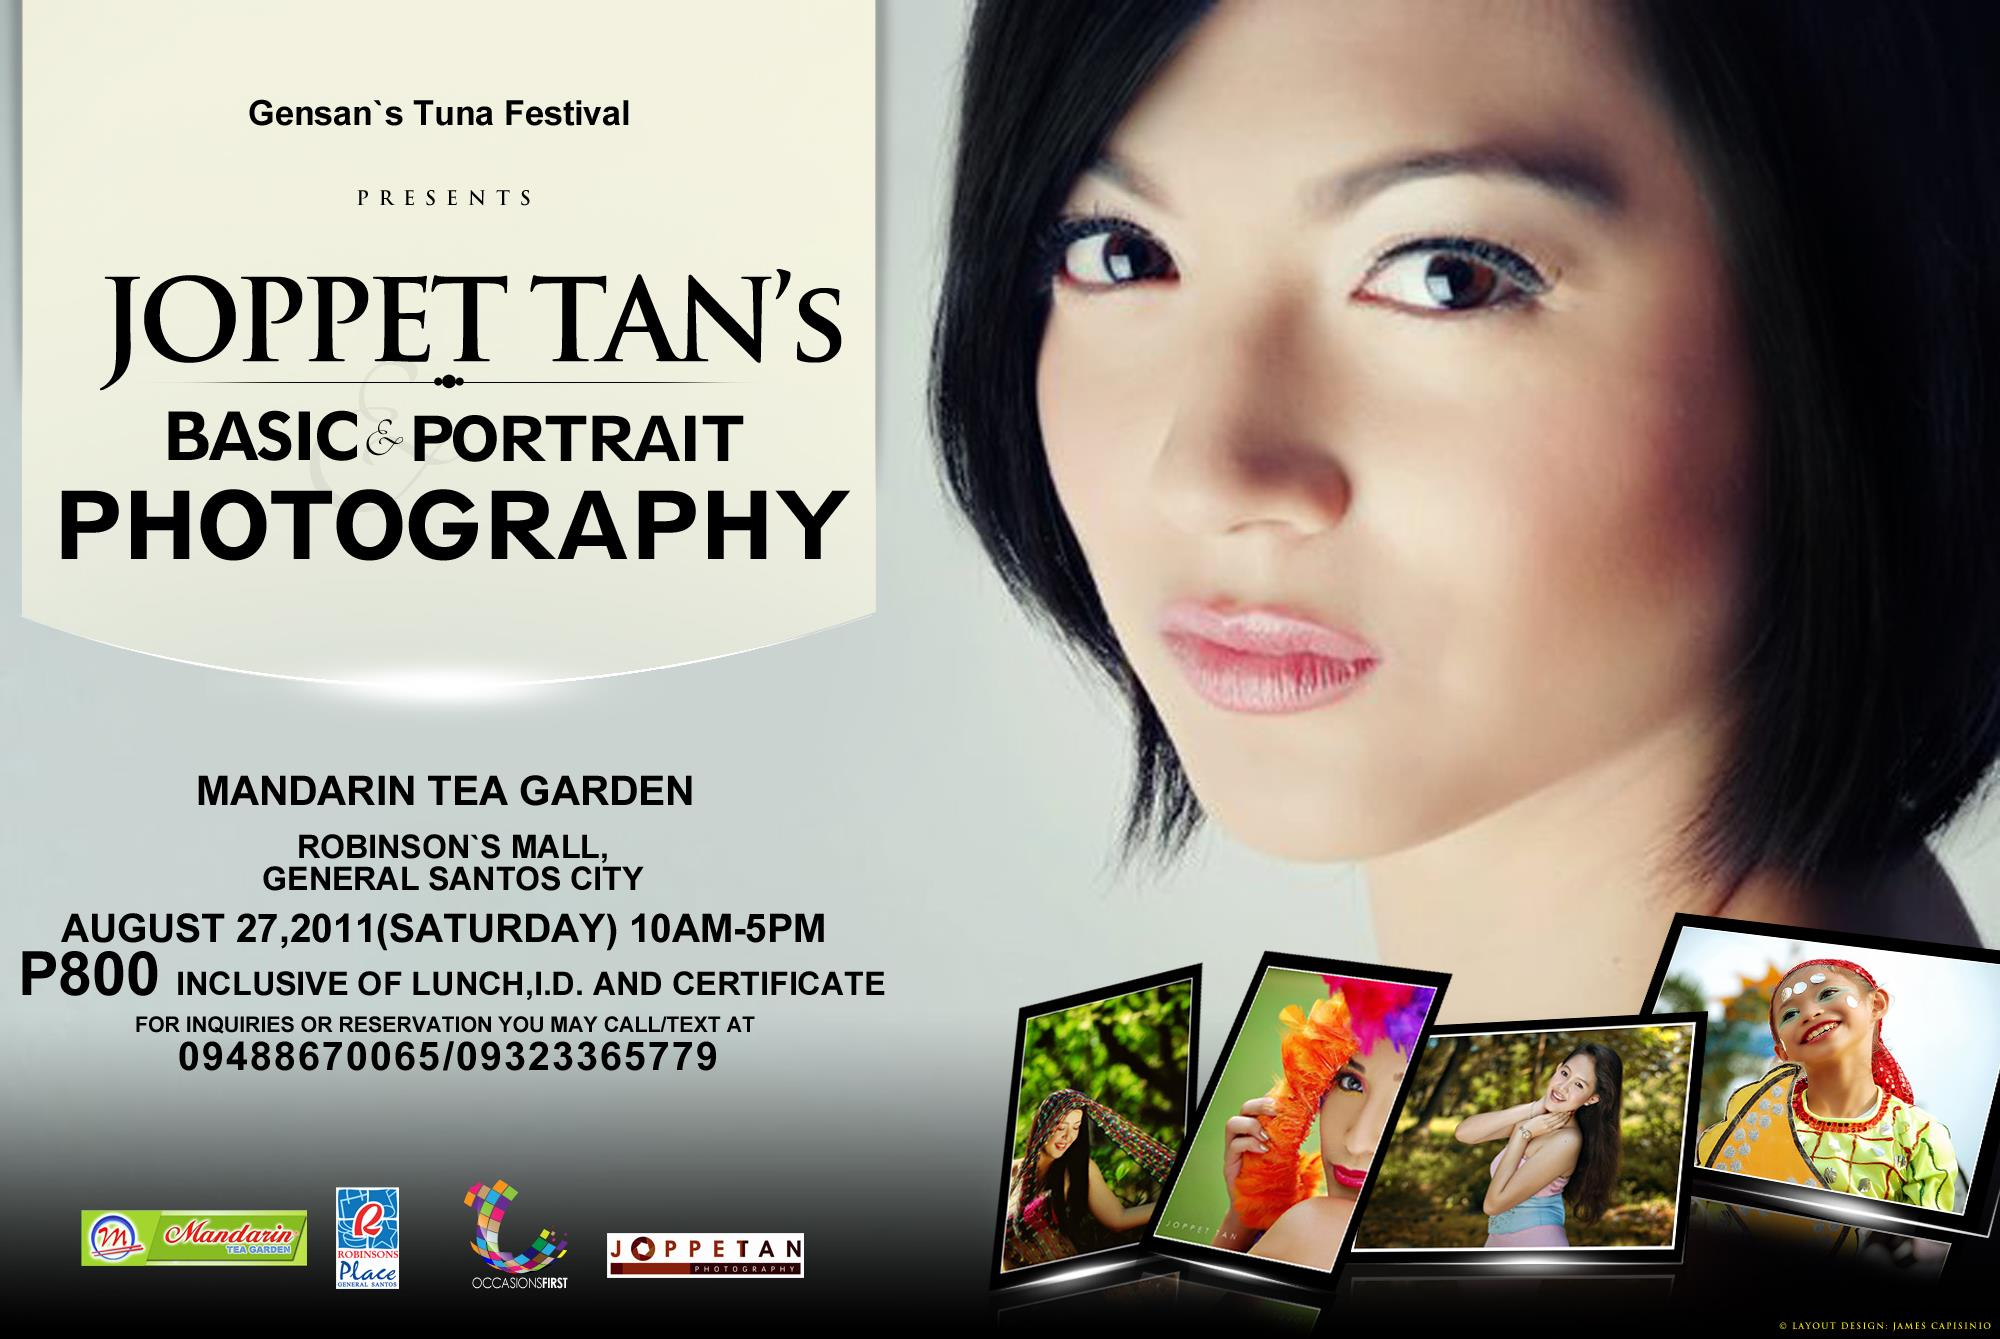 Joppet Tan's – Basic and Portrait Photography (August 27, 2011)